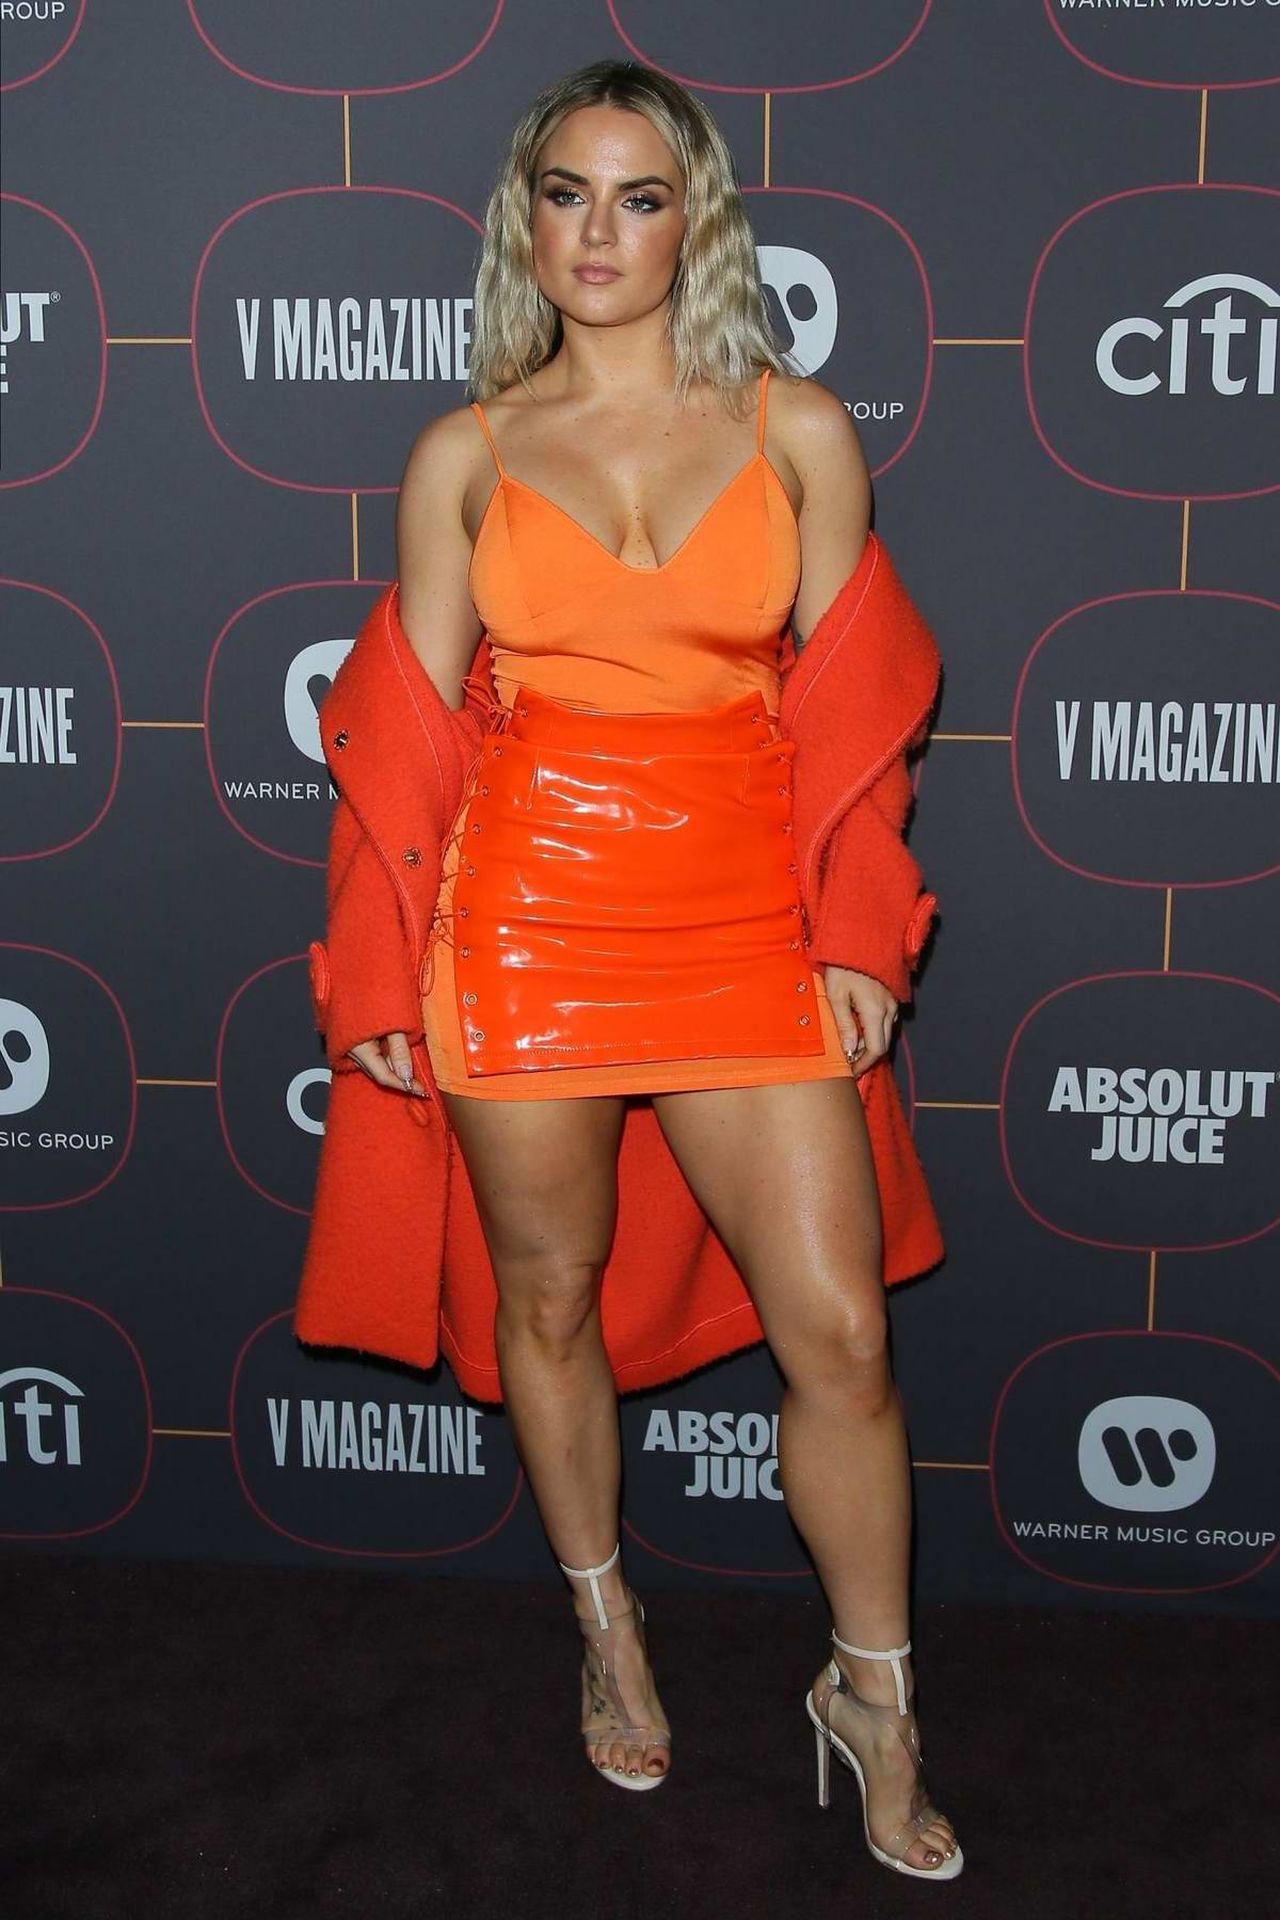 Jojo Shows Off Her Tits At The Warner Music Group Pre Grammy Party In Hollywood 0002